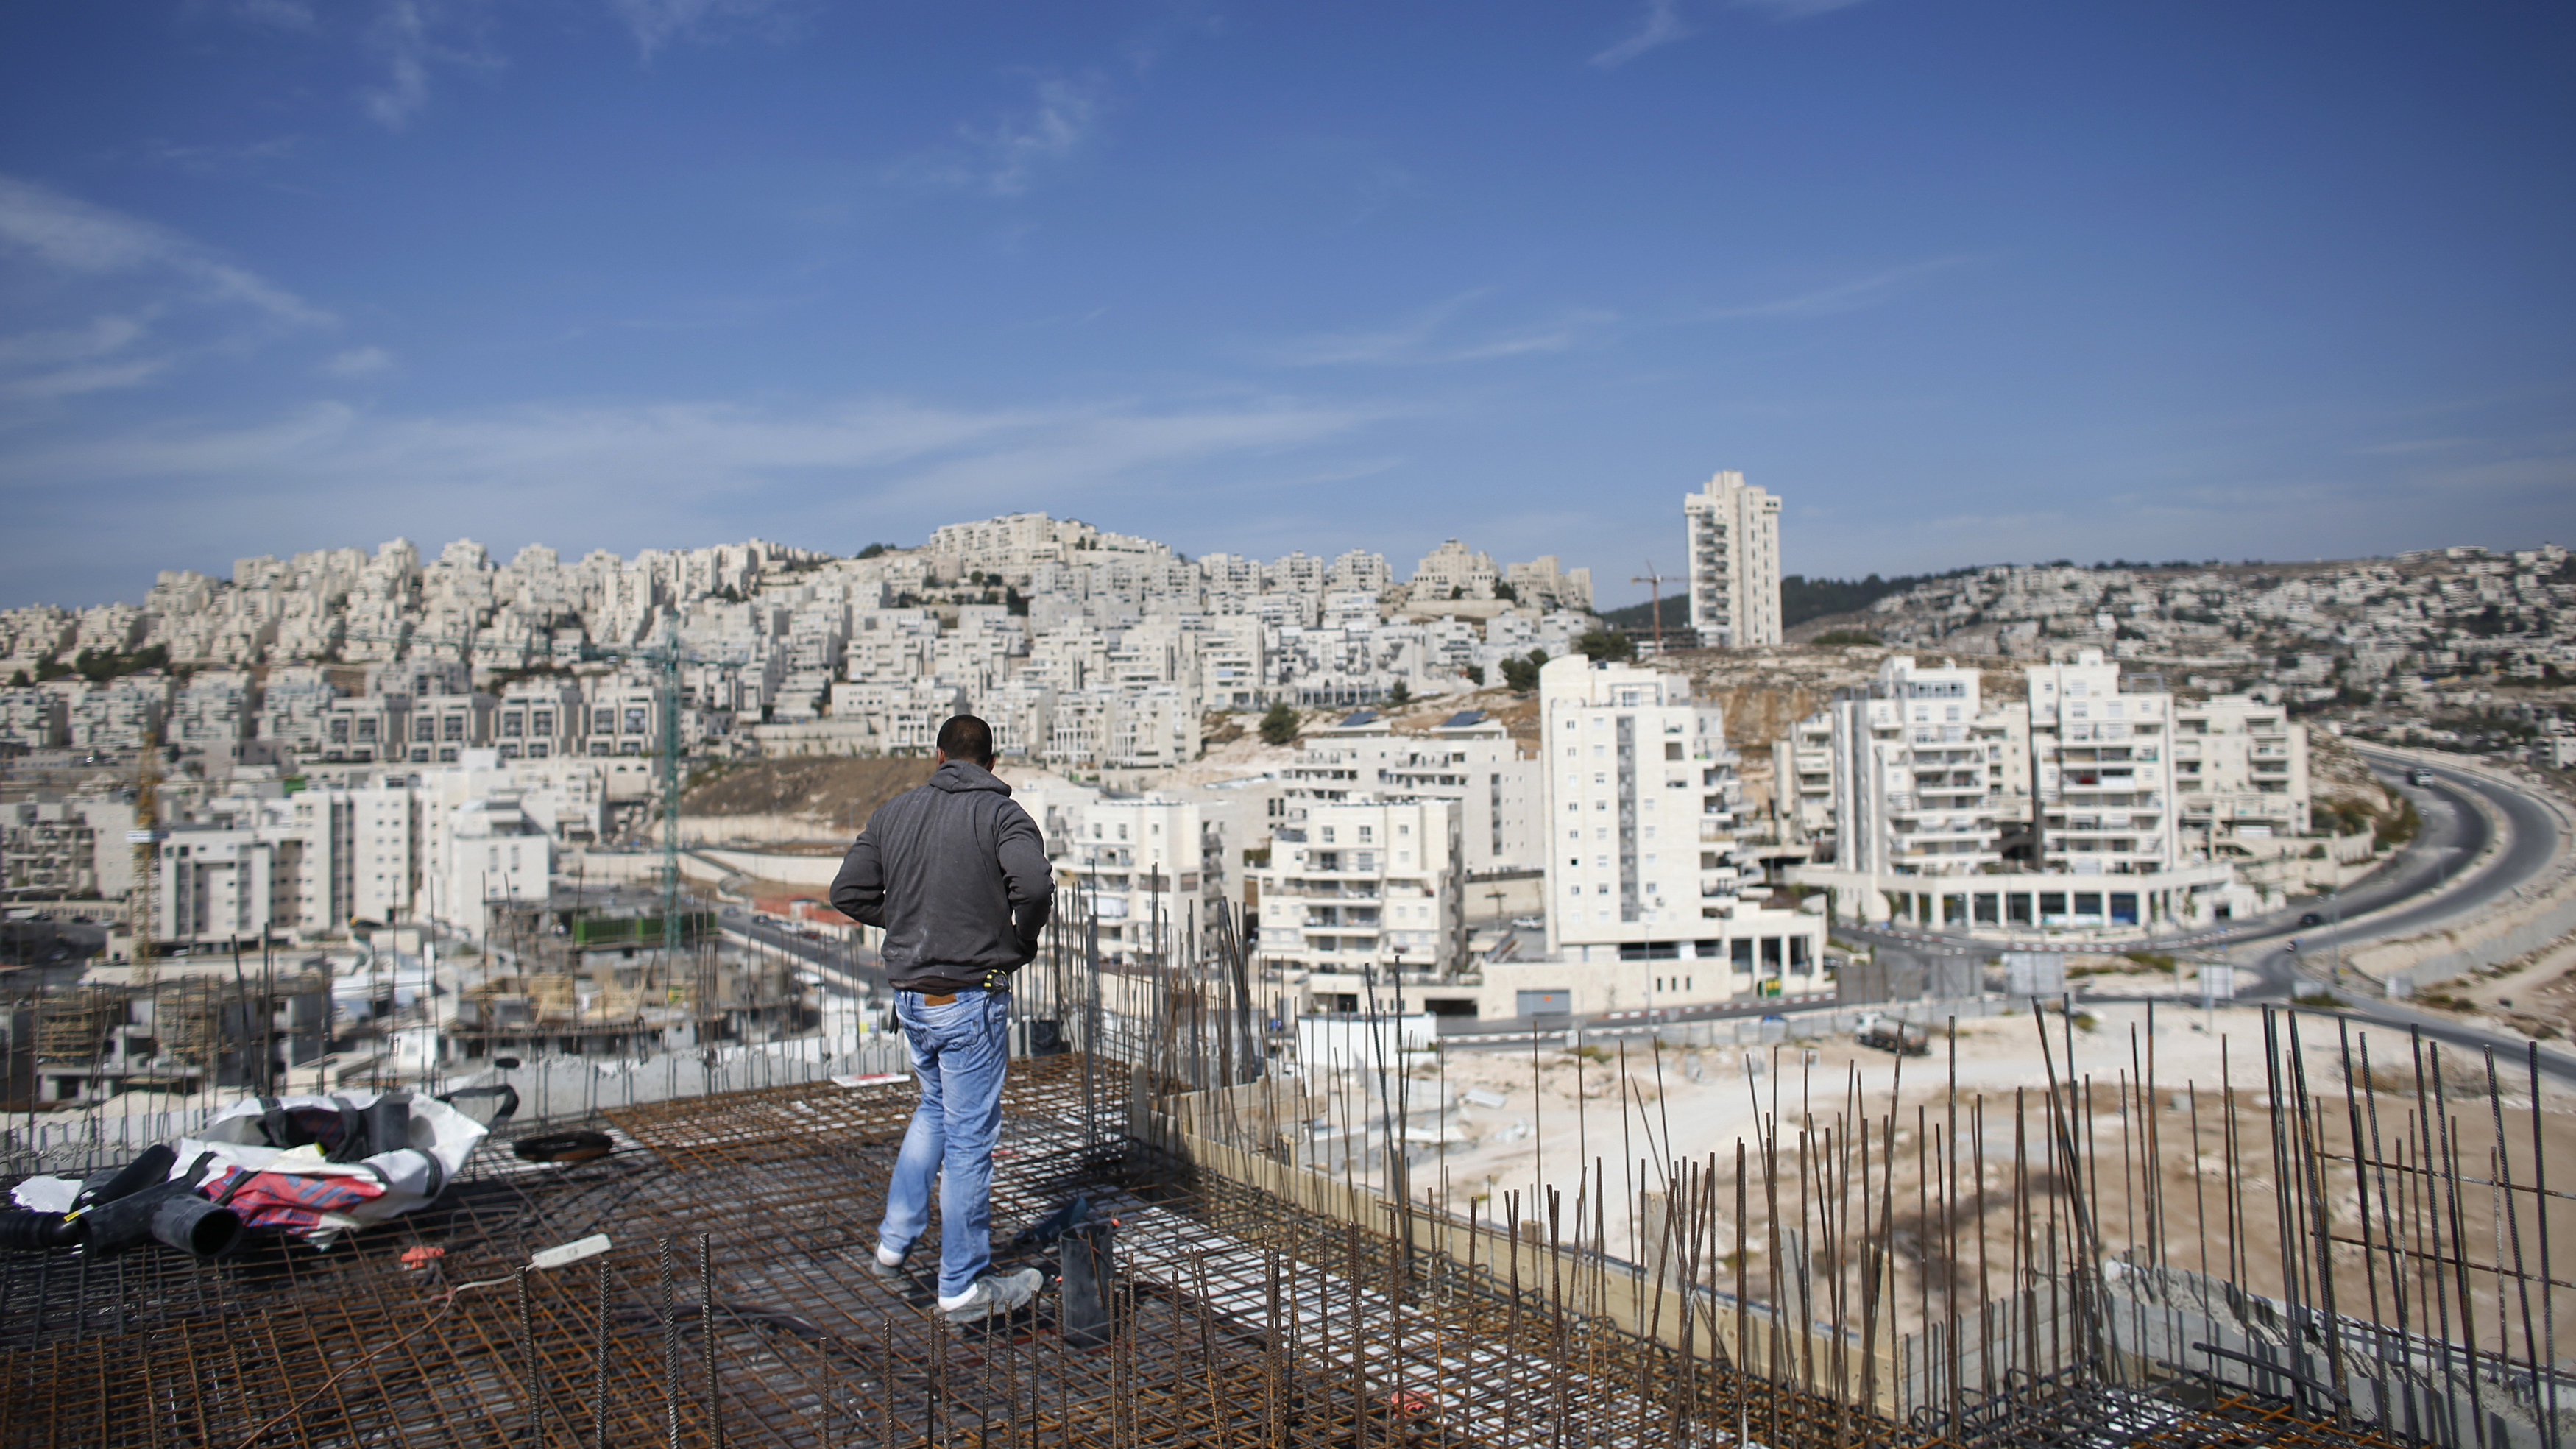 A labourer stands on an apartment building under construction in a Jewish settlement known to Israelis as Har Homa and to Palestinians as Jabal Abu Ghneim, in an area of the West Bank that Israel captured in a 1967 war and annexed to the city of Jerusalem, October 28, 2014. REUTERS/Ronen Zvulun